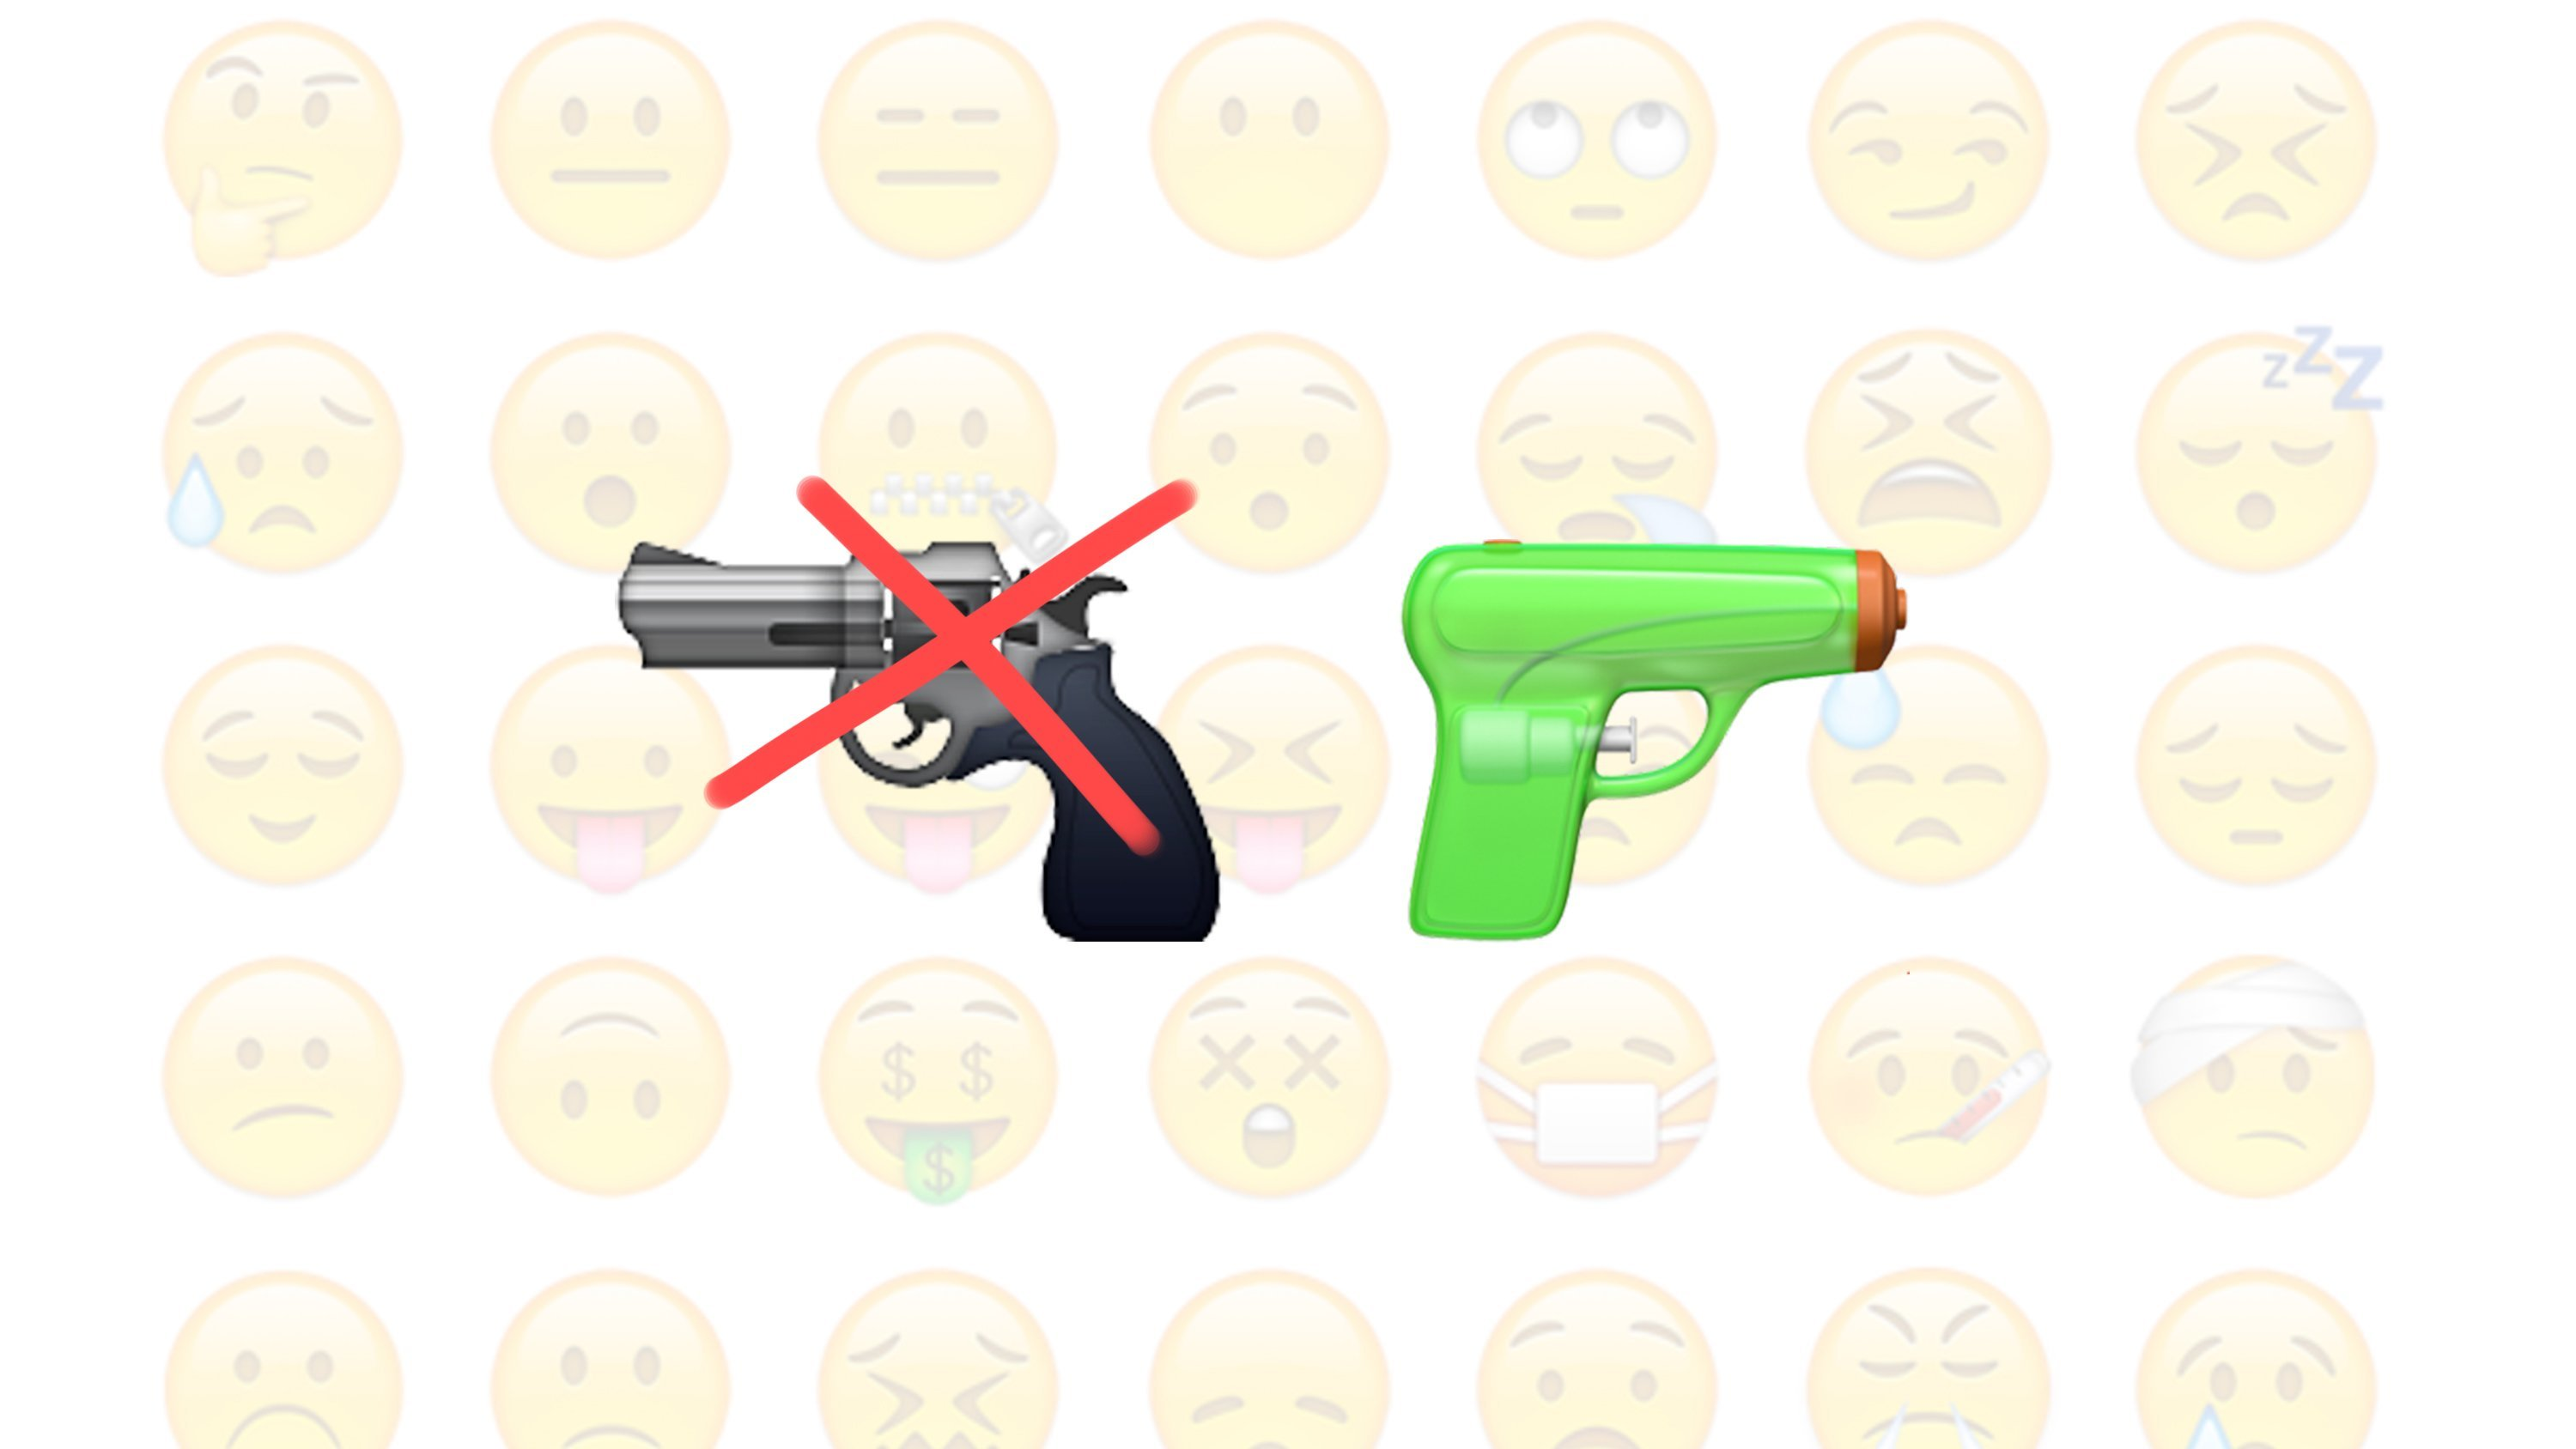 Bullets are out, water is in. Apple is replacing the controversial pistol emoji with a green water gun in the next version of its iPhone and iPad operating system, iOS 10.